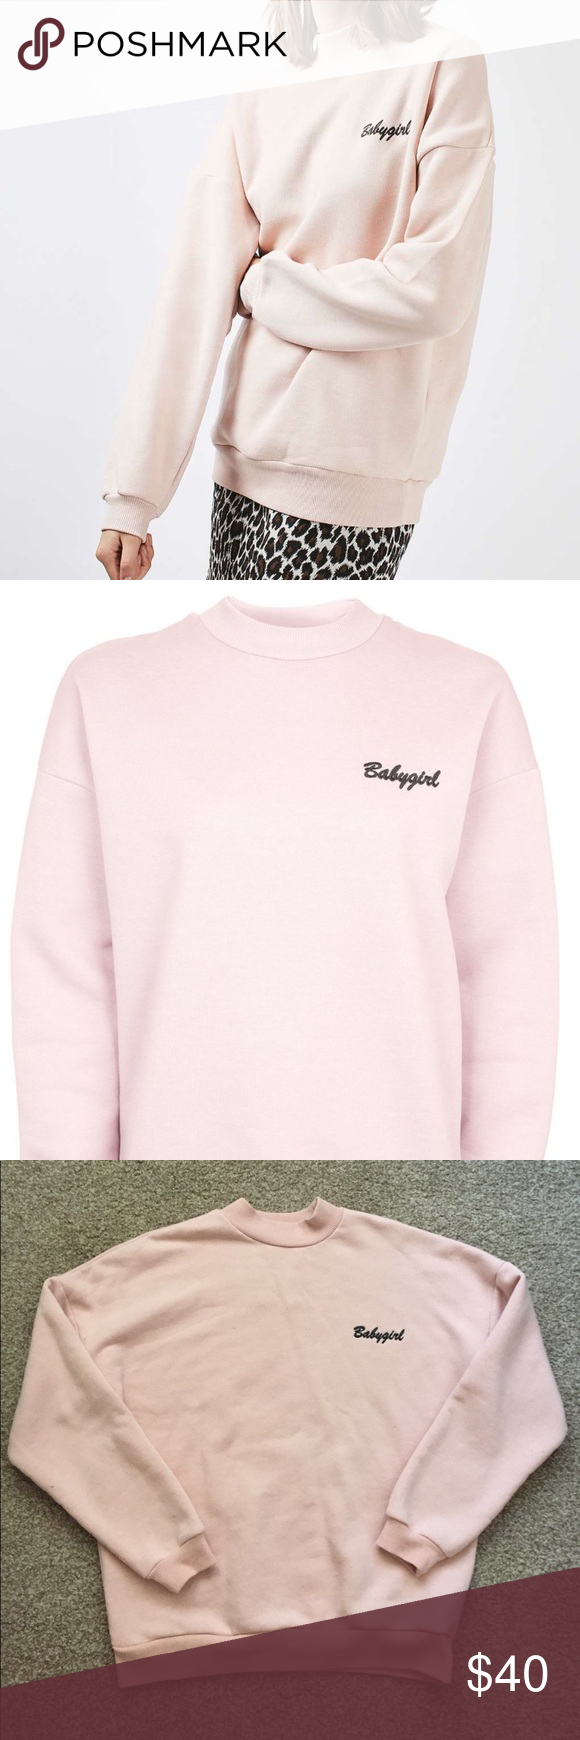 a55106b8eb0 TOPSHOP Babygirl High Neck Sweatshirt TOPSHOP Babygirl High Neck Sweatshirt  by Tee   Cake. Worn once in perfect condition. Super comfy